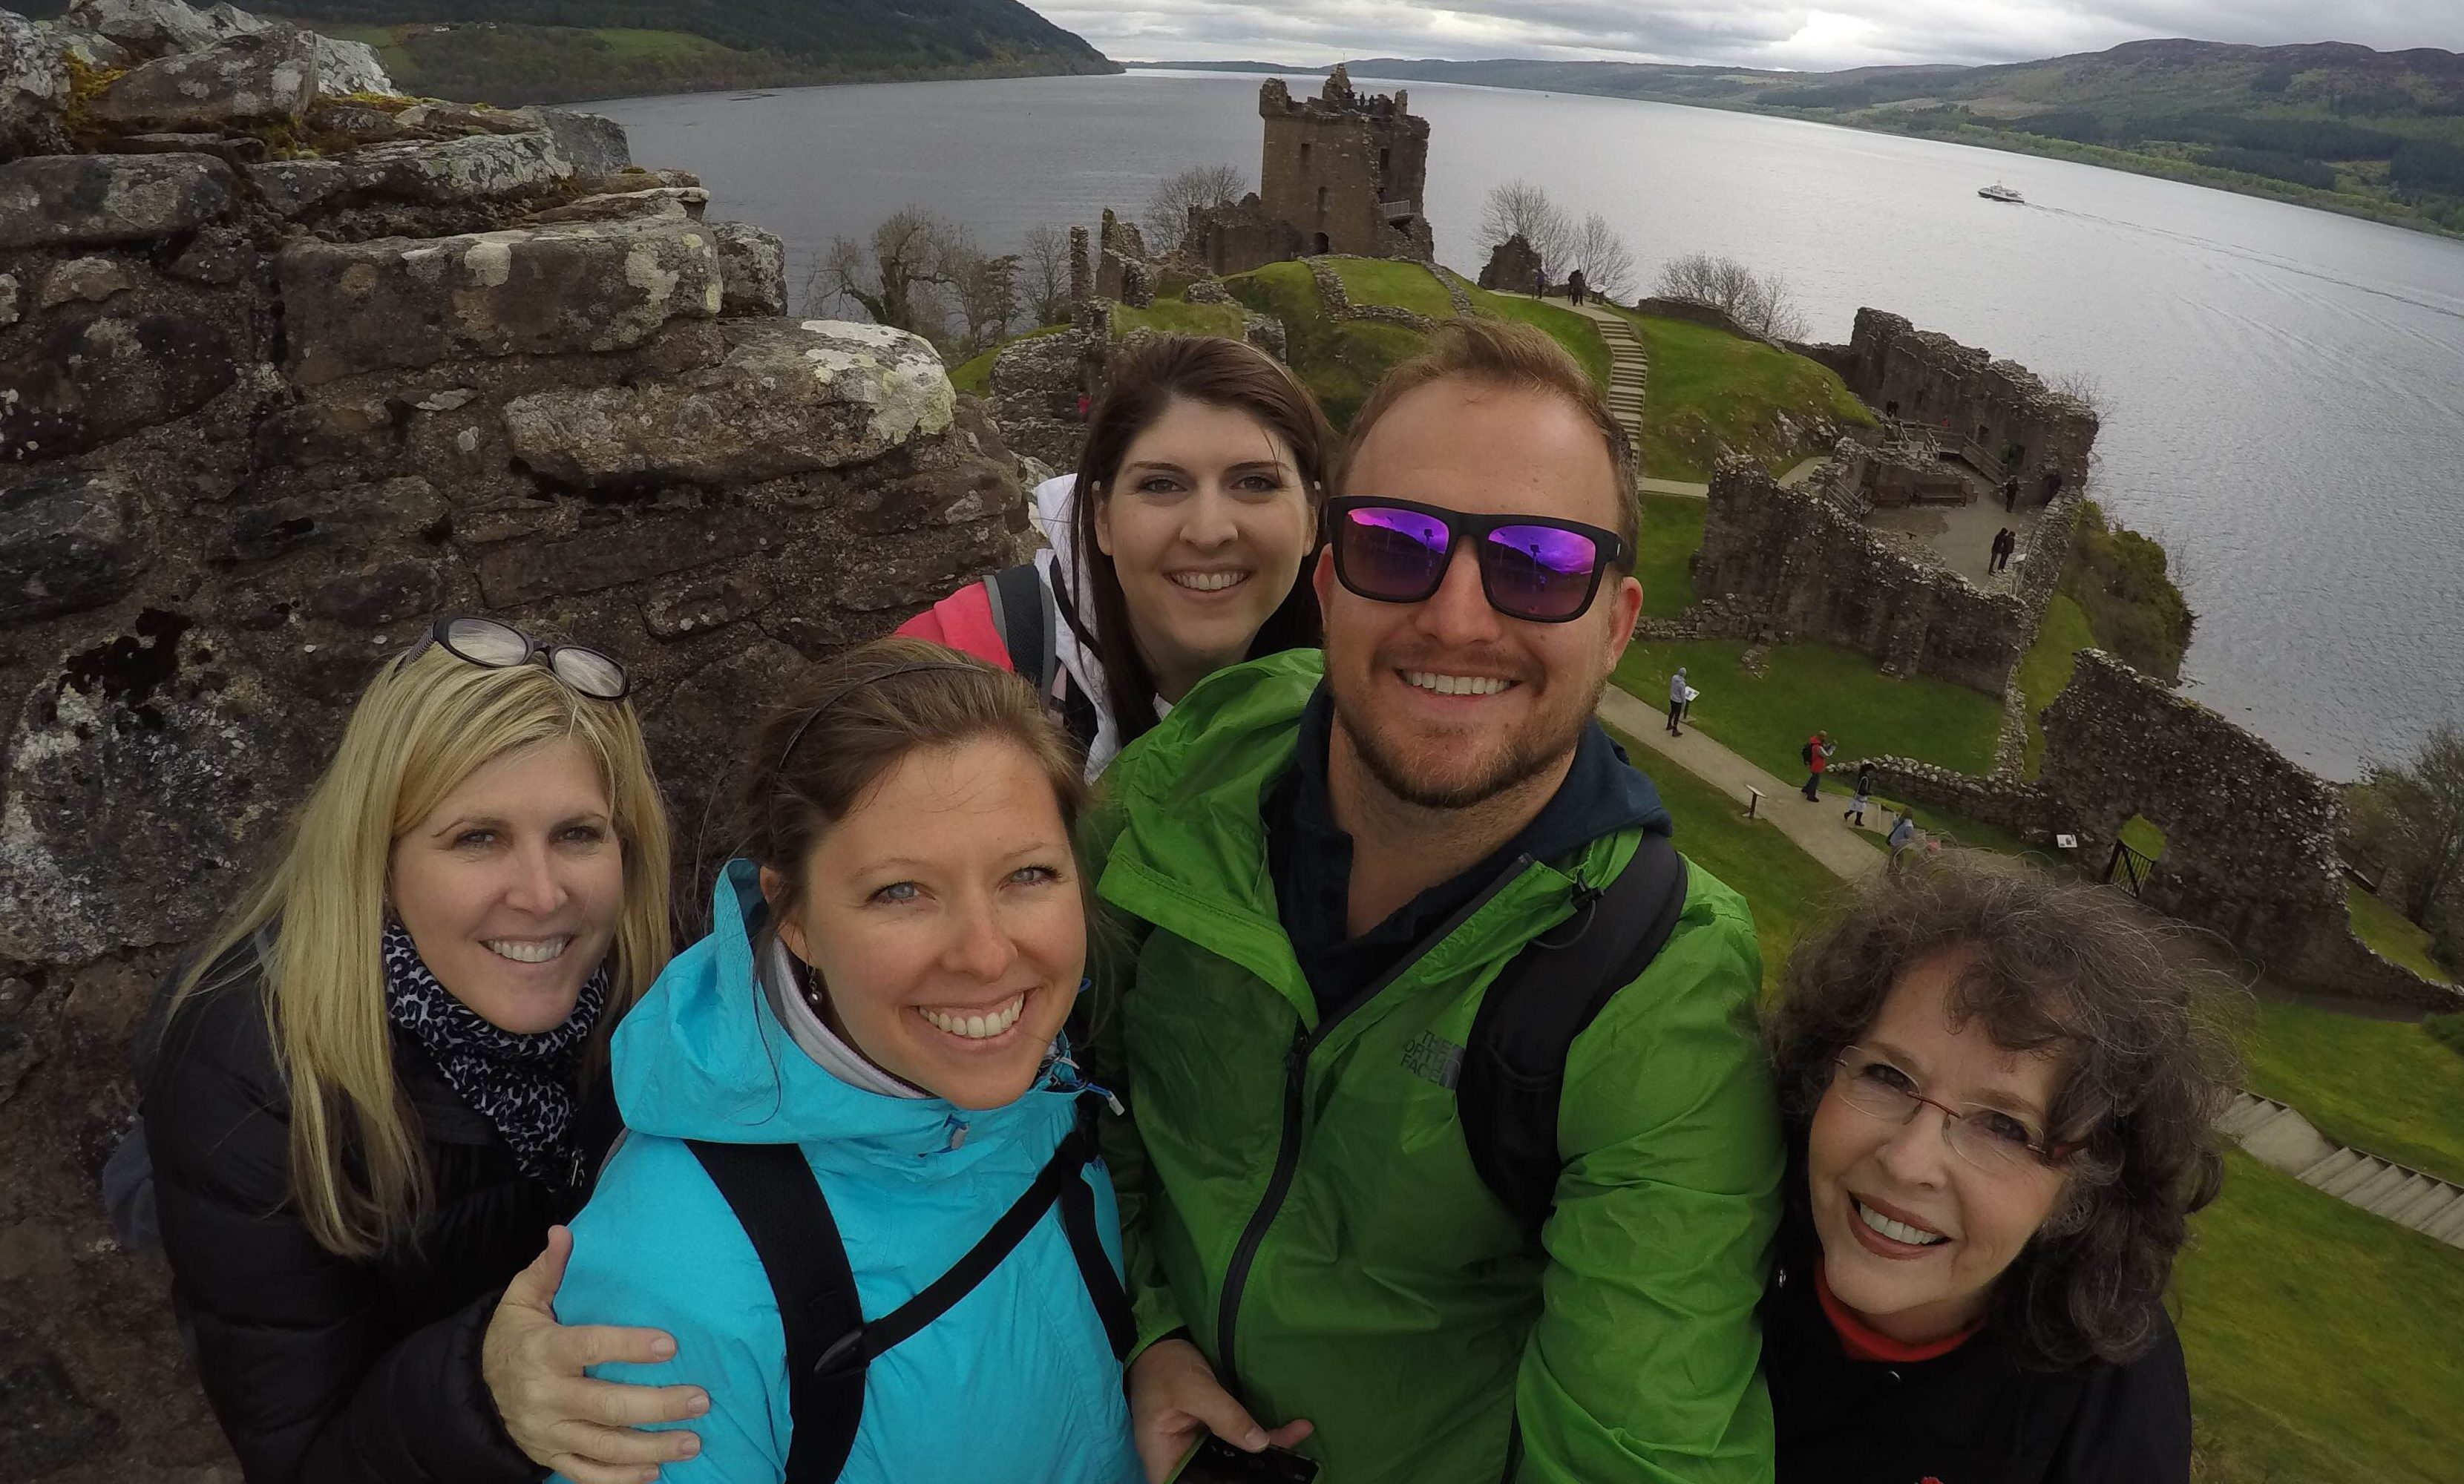 Sheila (right) with her family at Urquhart Castle on the shores of Loch Ness. Sheila's own photos of the trip have been lost.